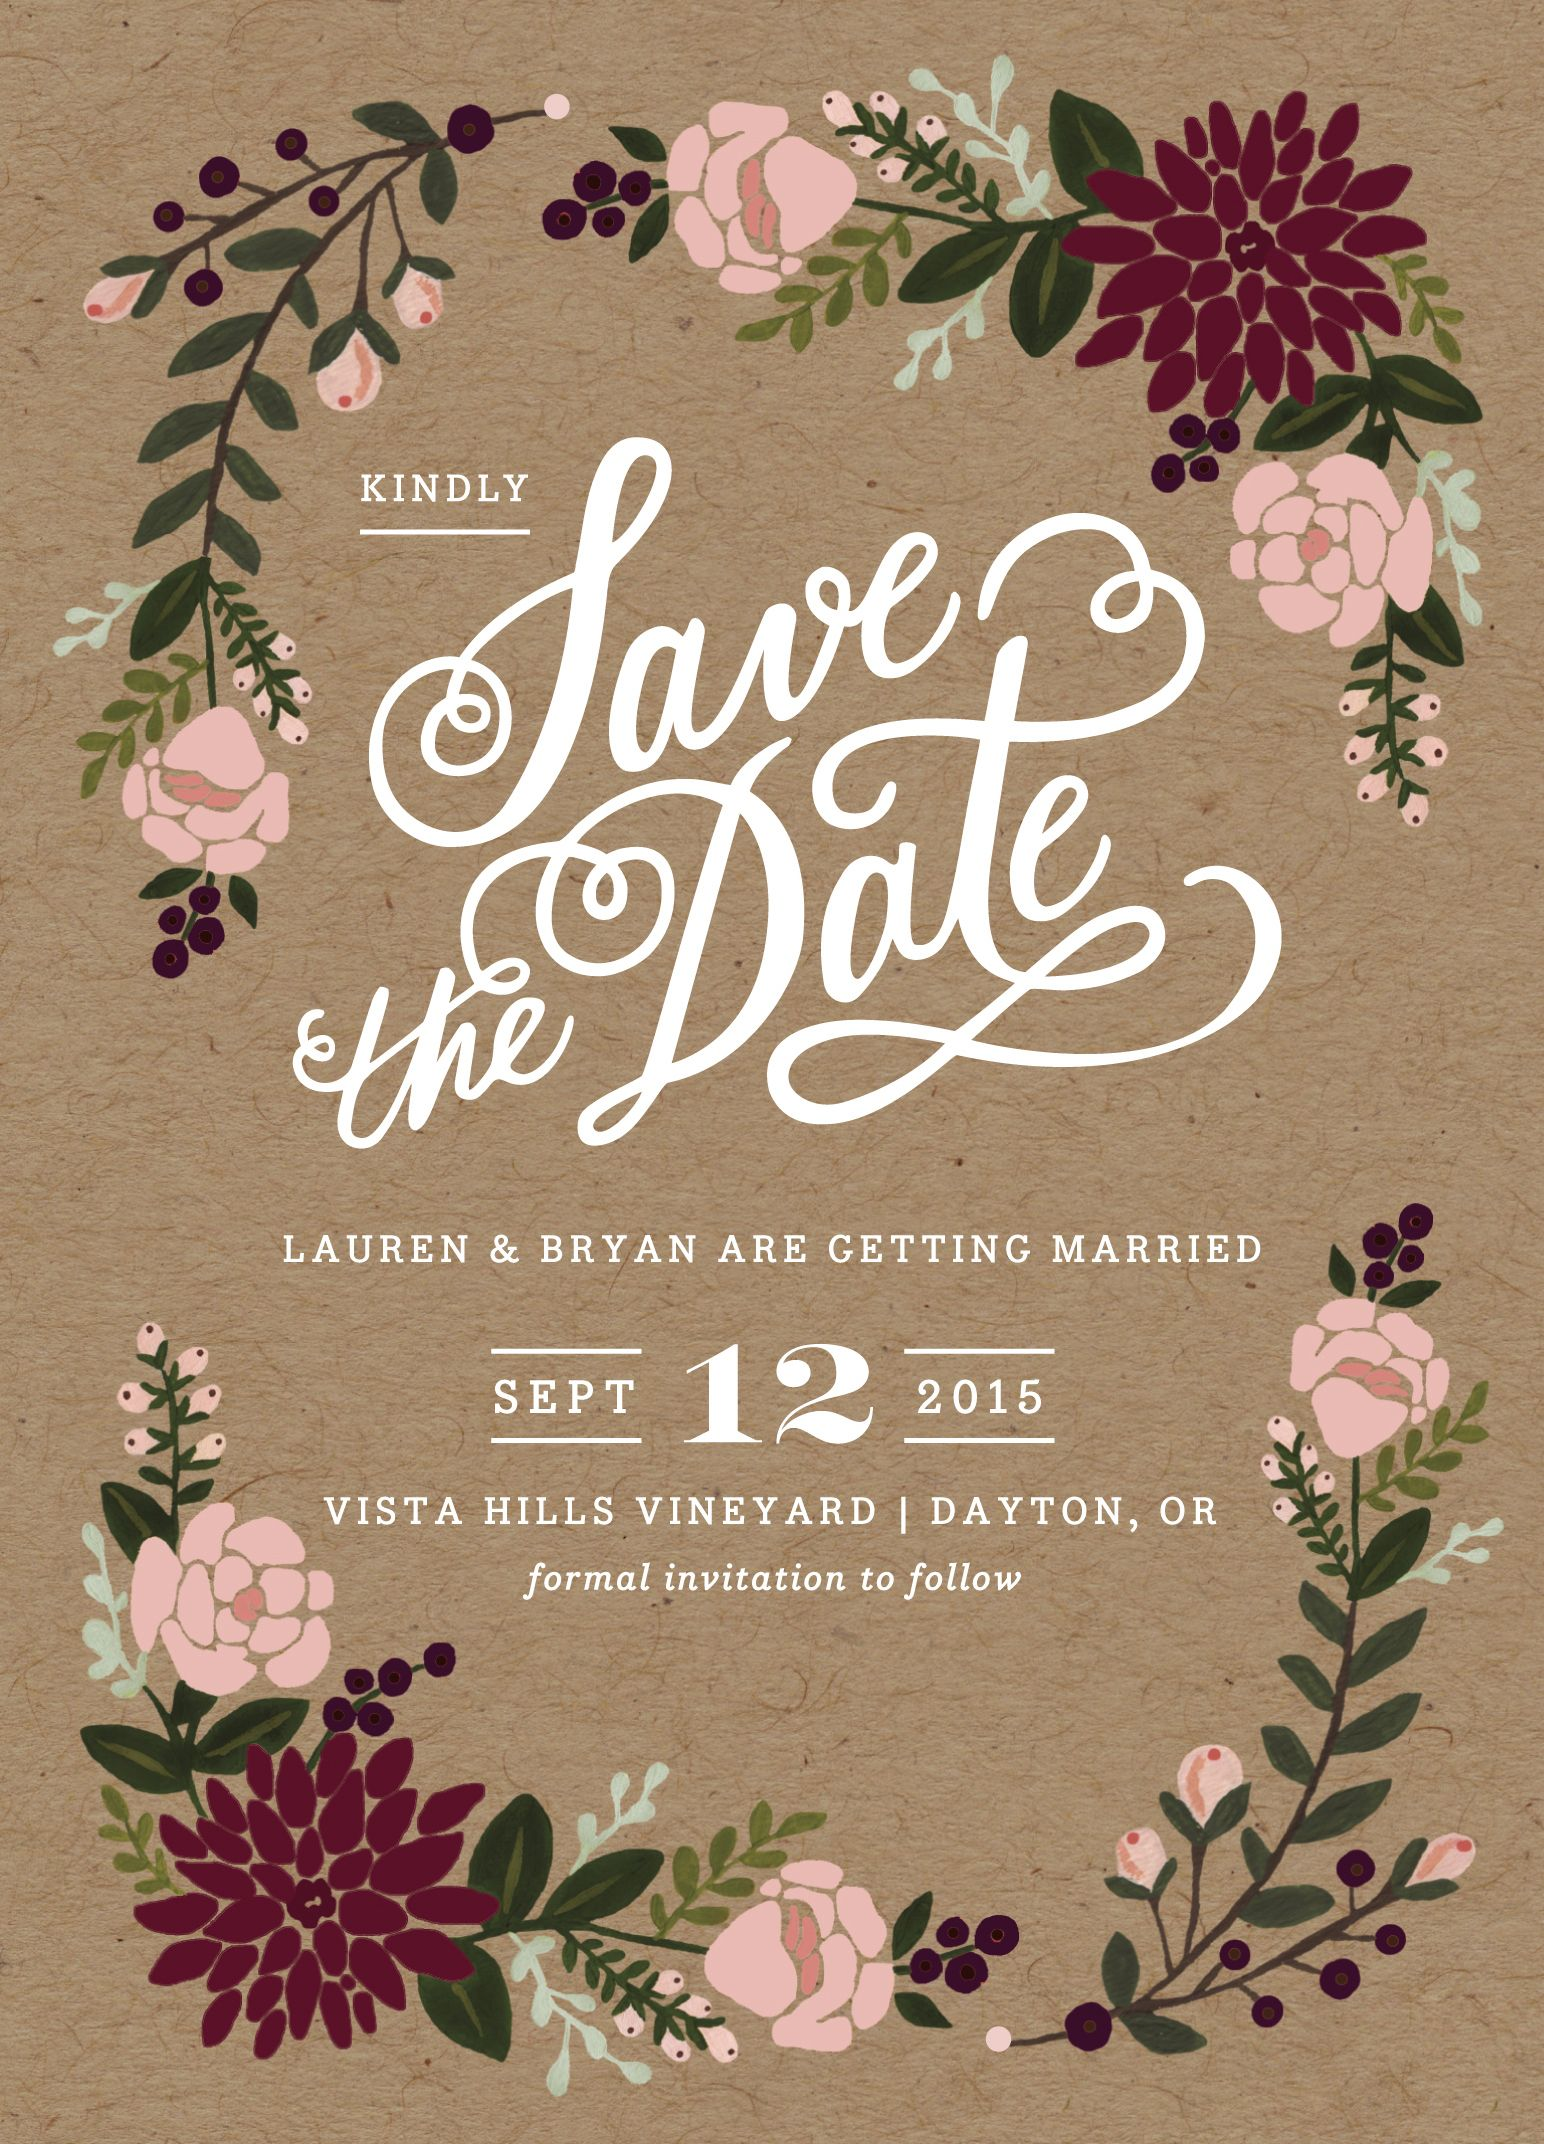 Our official save the dates wedding invitation pinterest scale